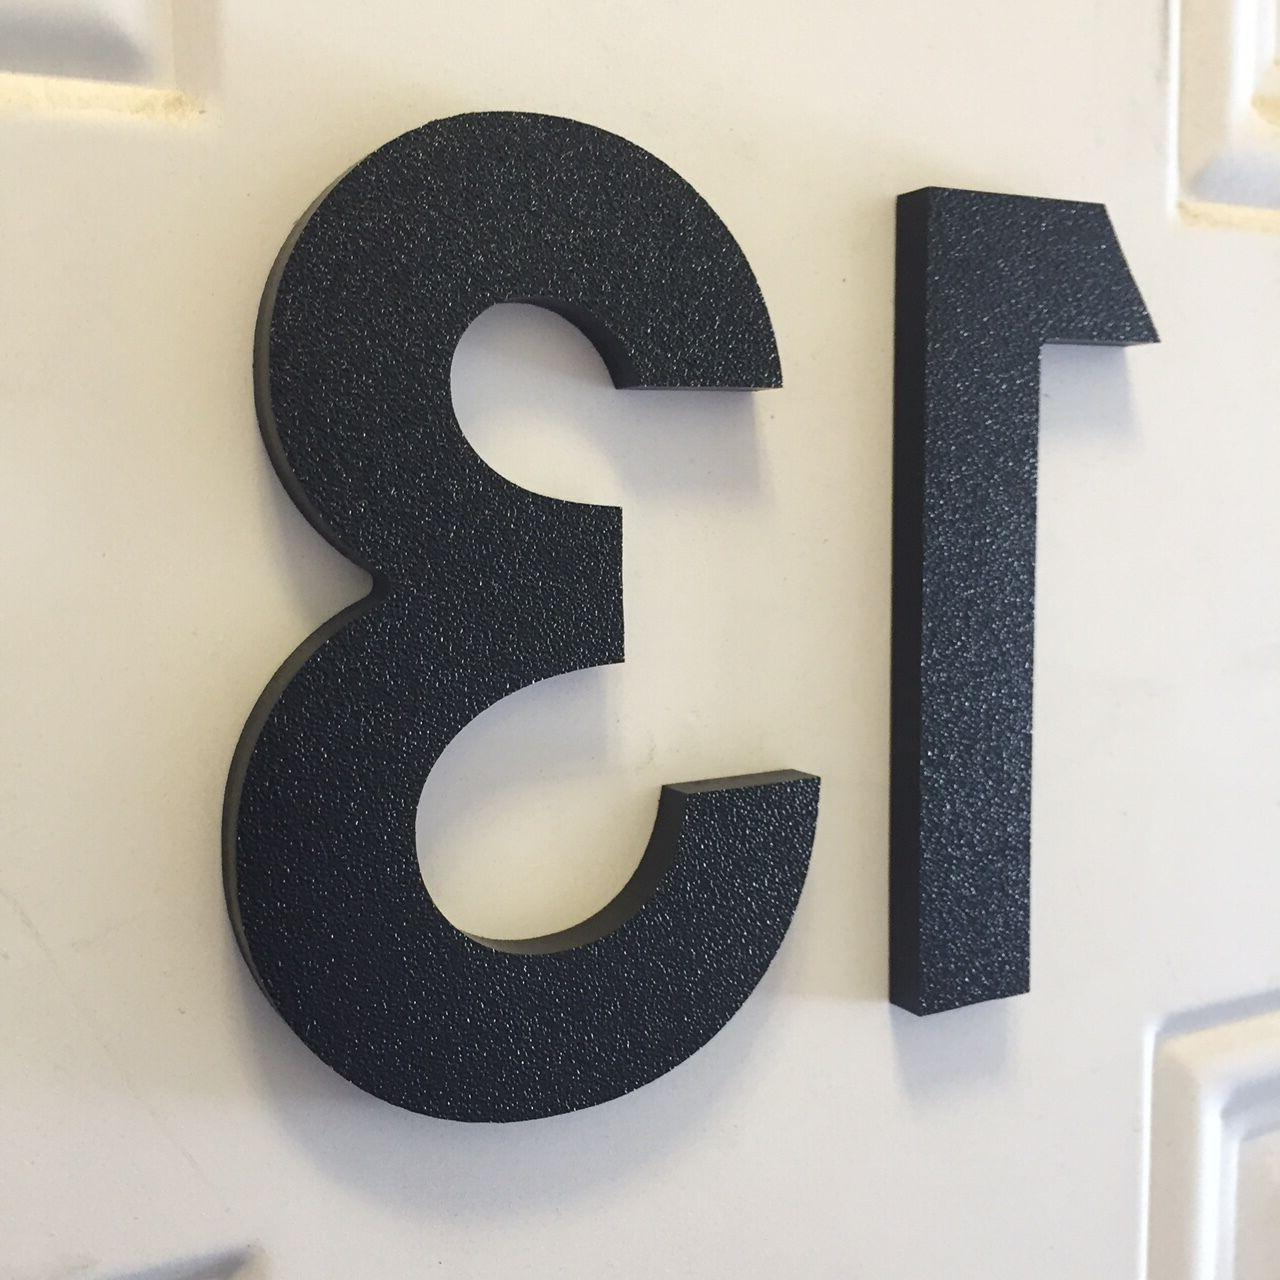 3 inch Magnetic House Numbers Letters for doors, houses, mai